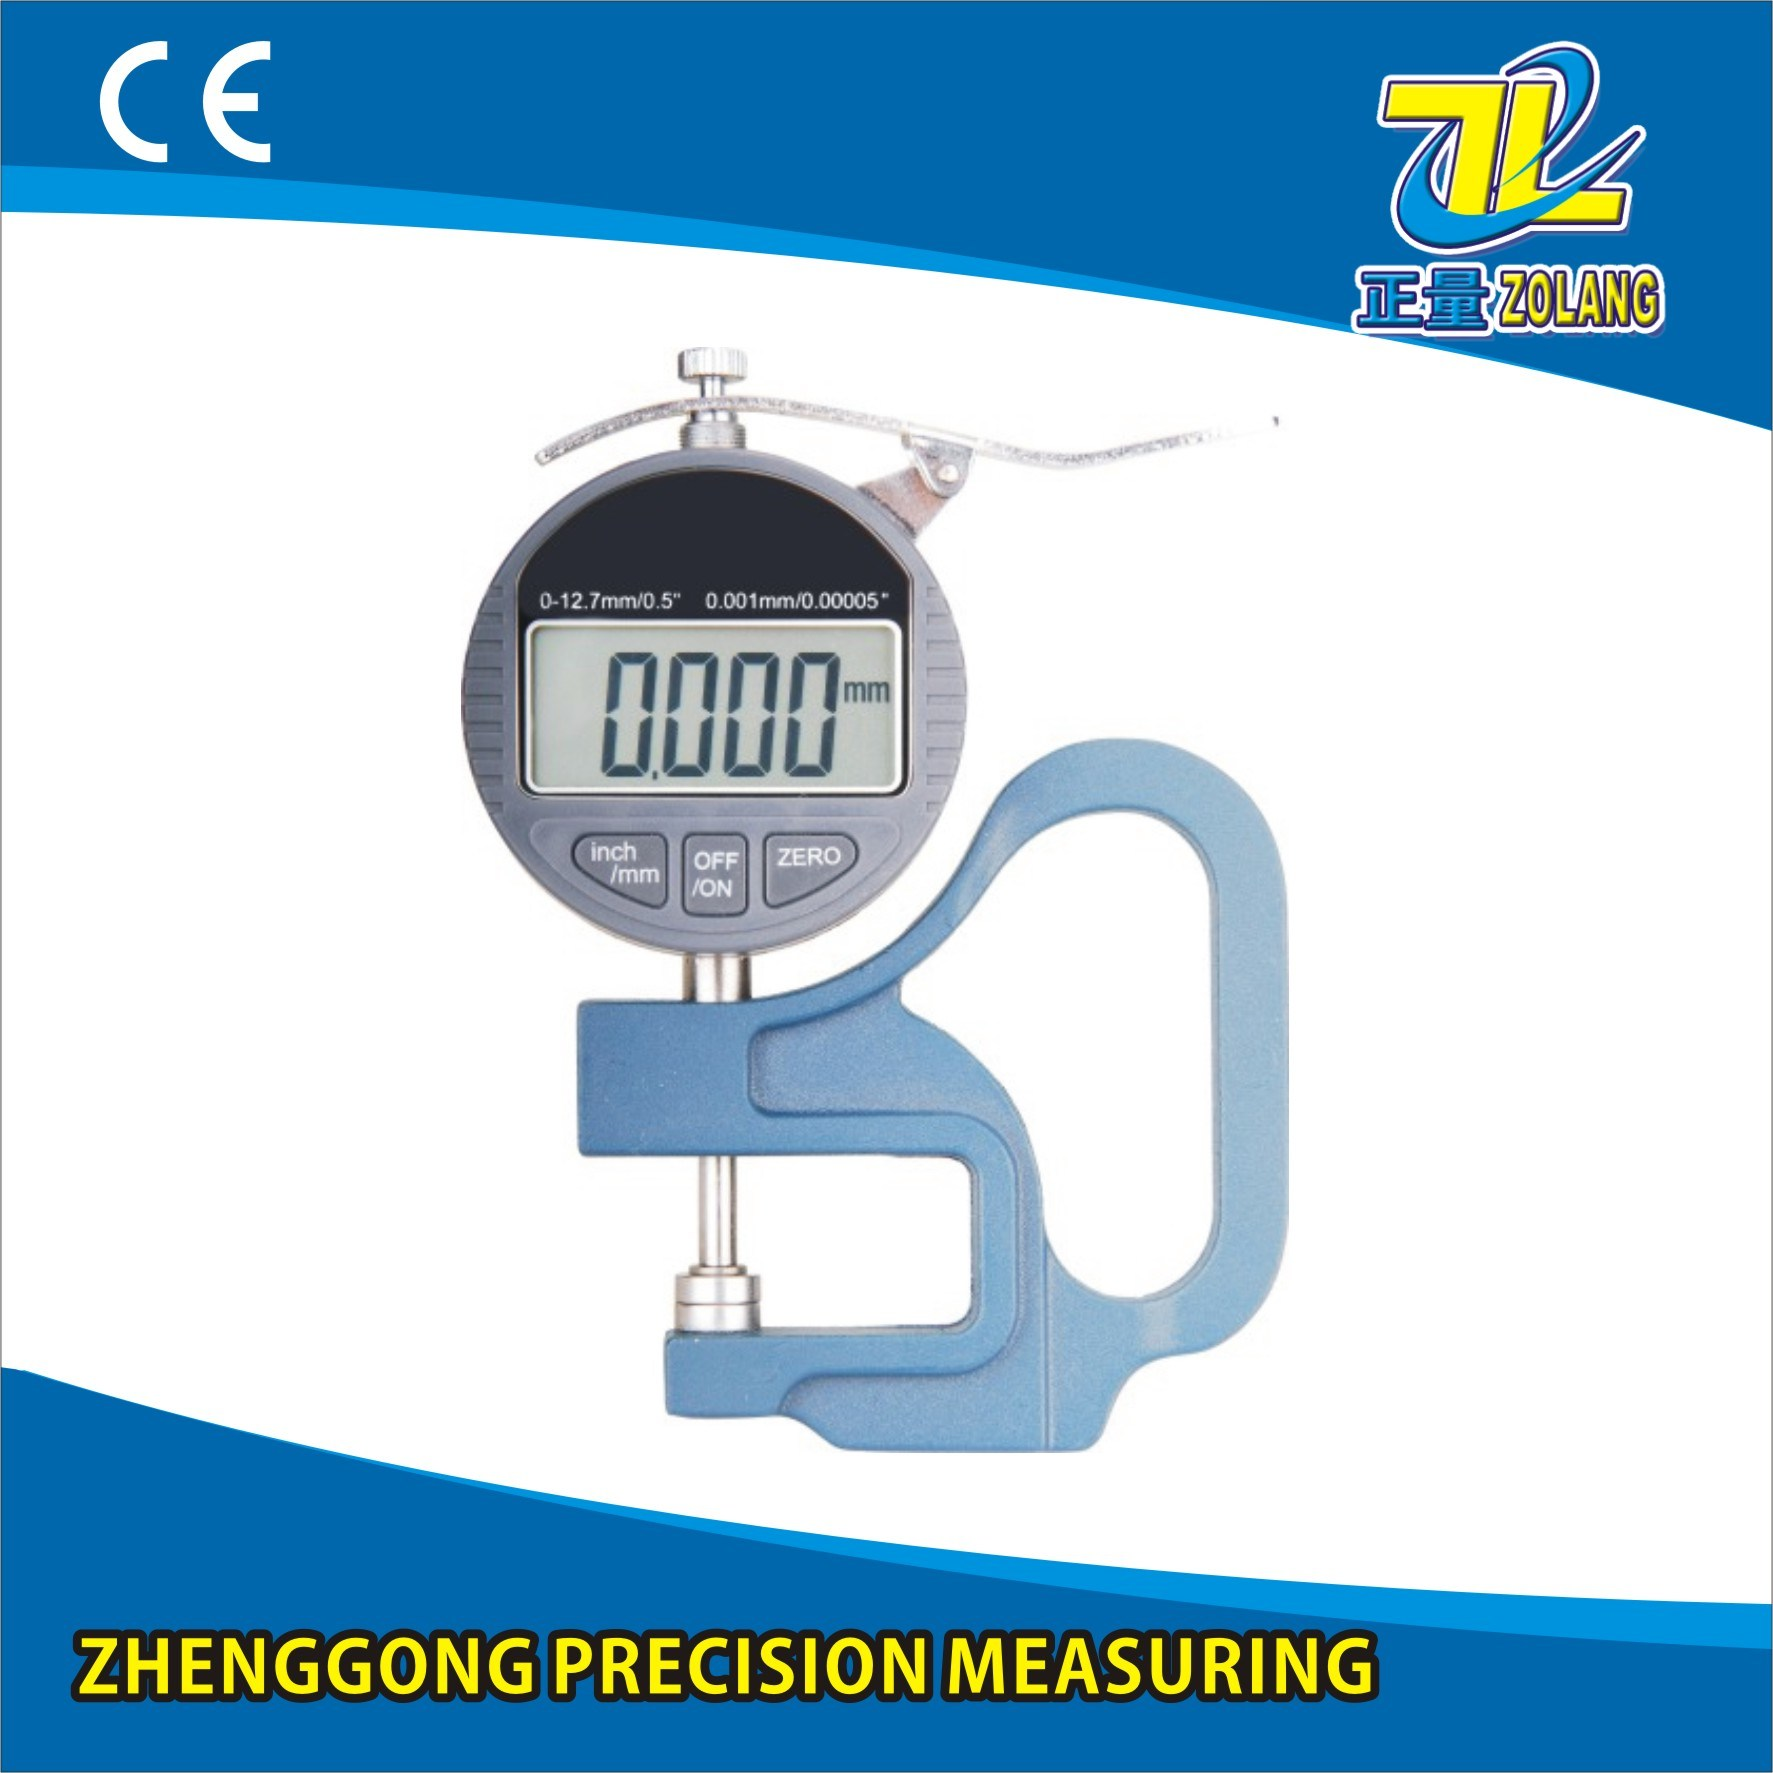 0-12.7/0.001mm Blue Handle Digital Thickness Gauge